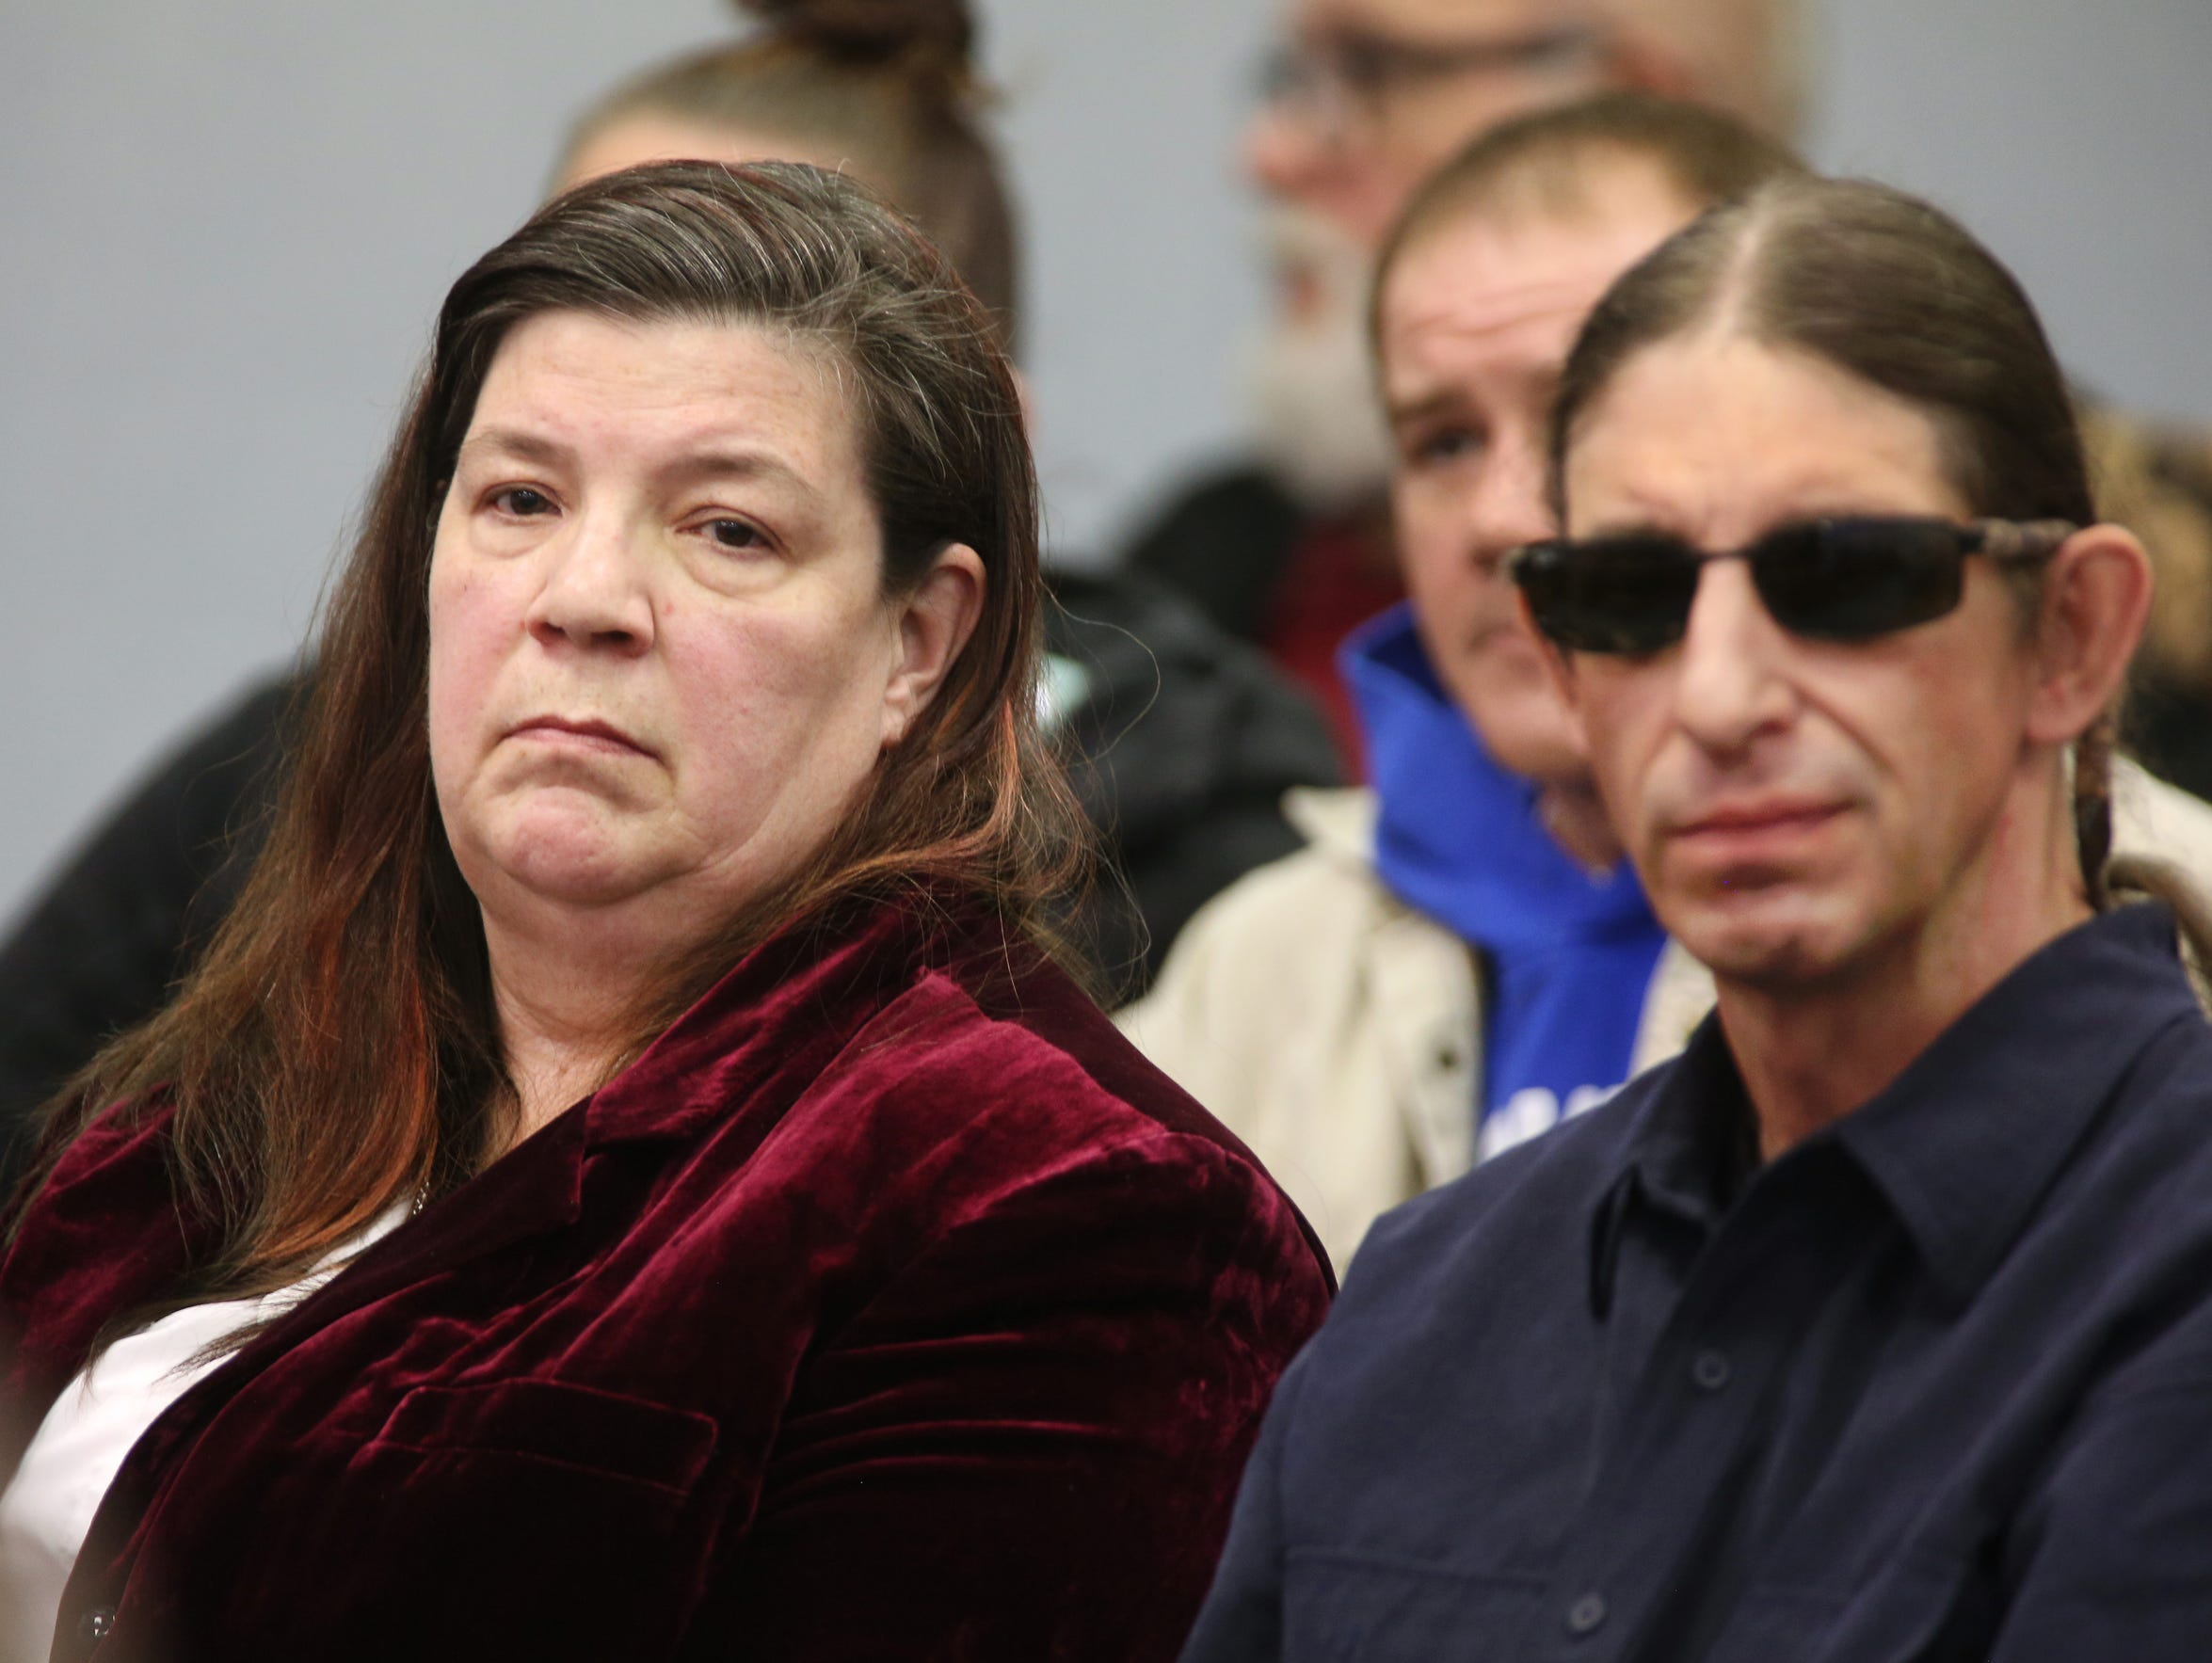 Frances Falan of Comstock Park, left, listens to testimony